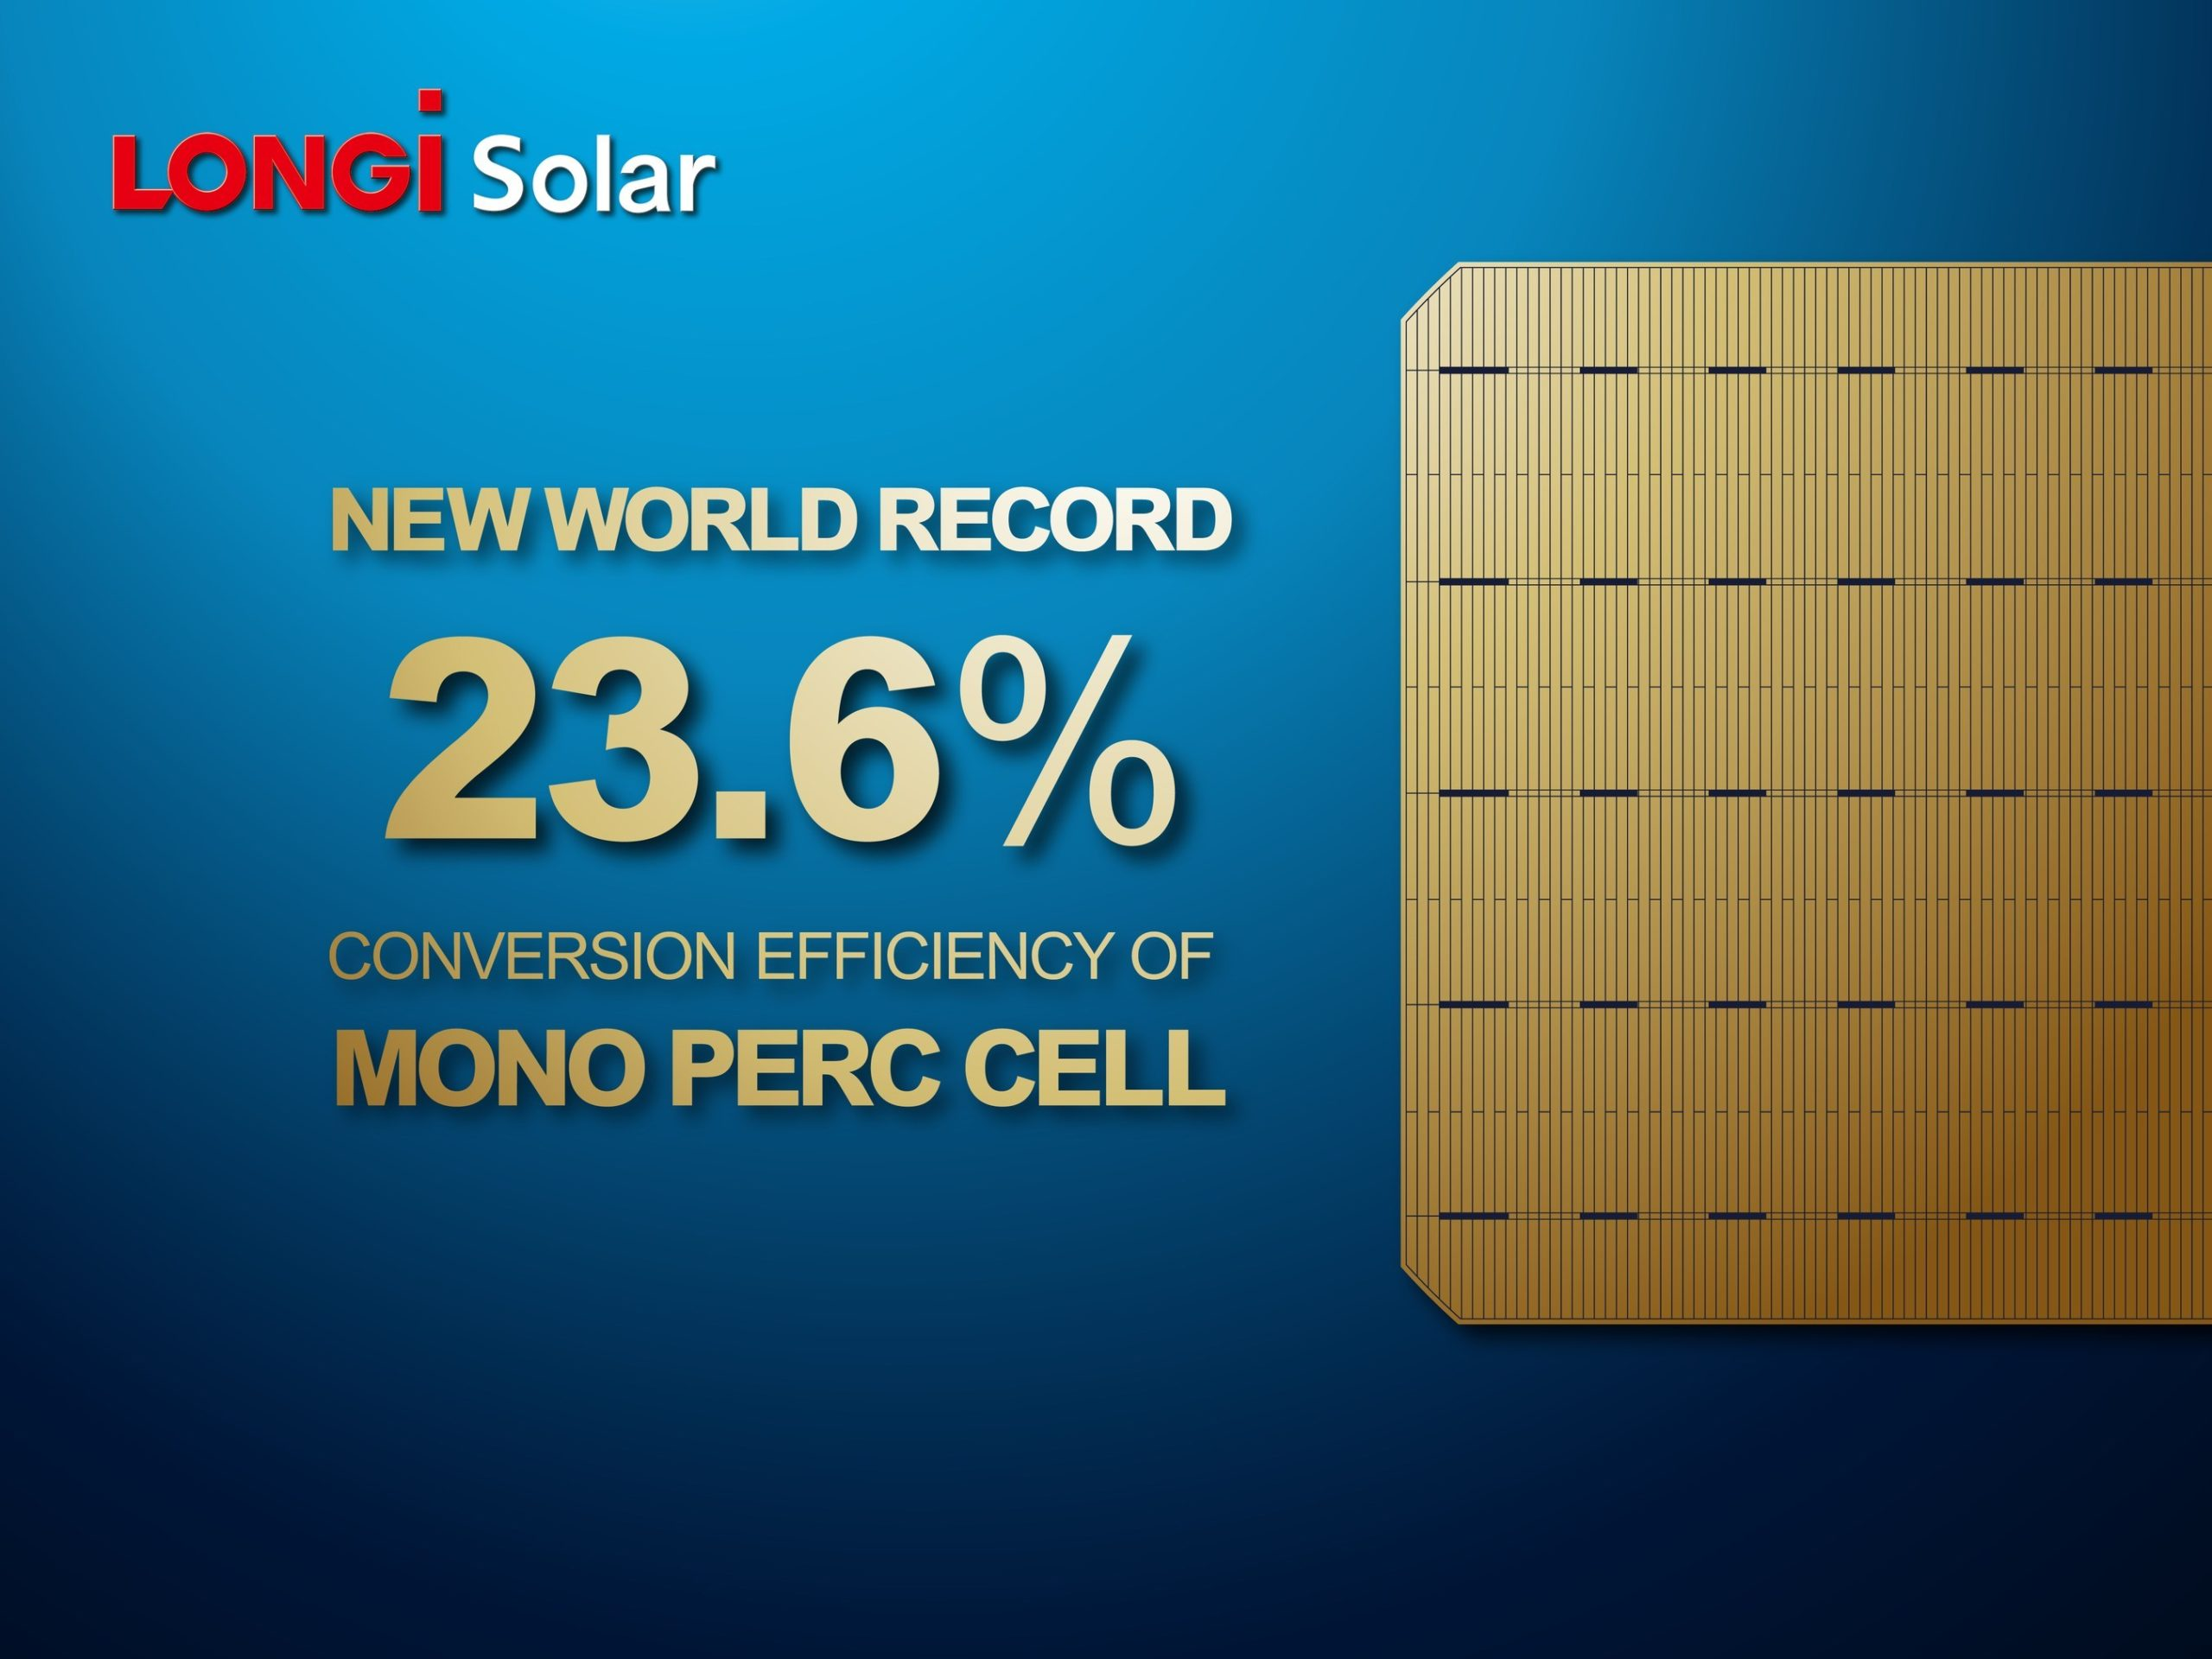 The results were certified by China's National Center of Supervision and Inspection on Solar Photovoltaic Product Quality (CPVT). Image: LONGi Solar